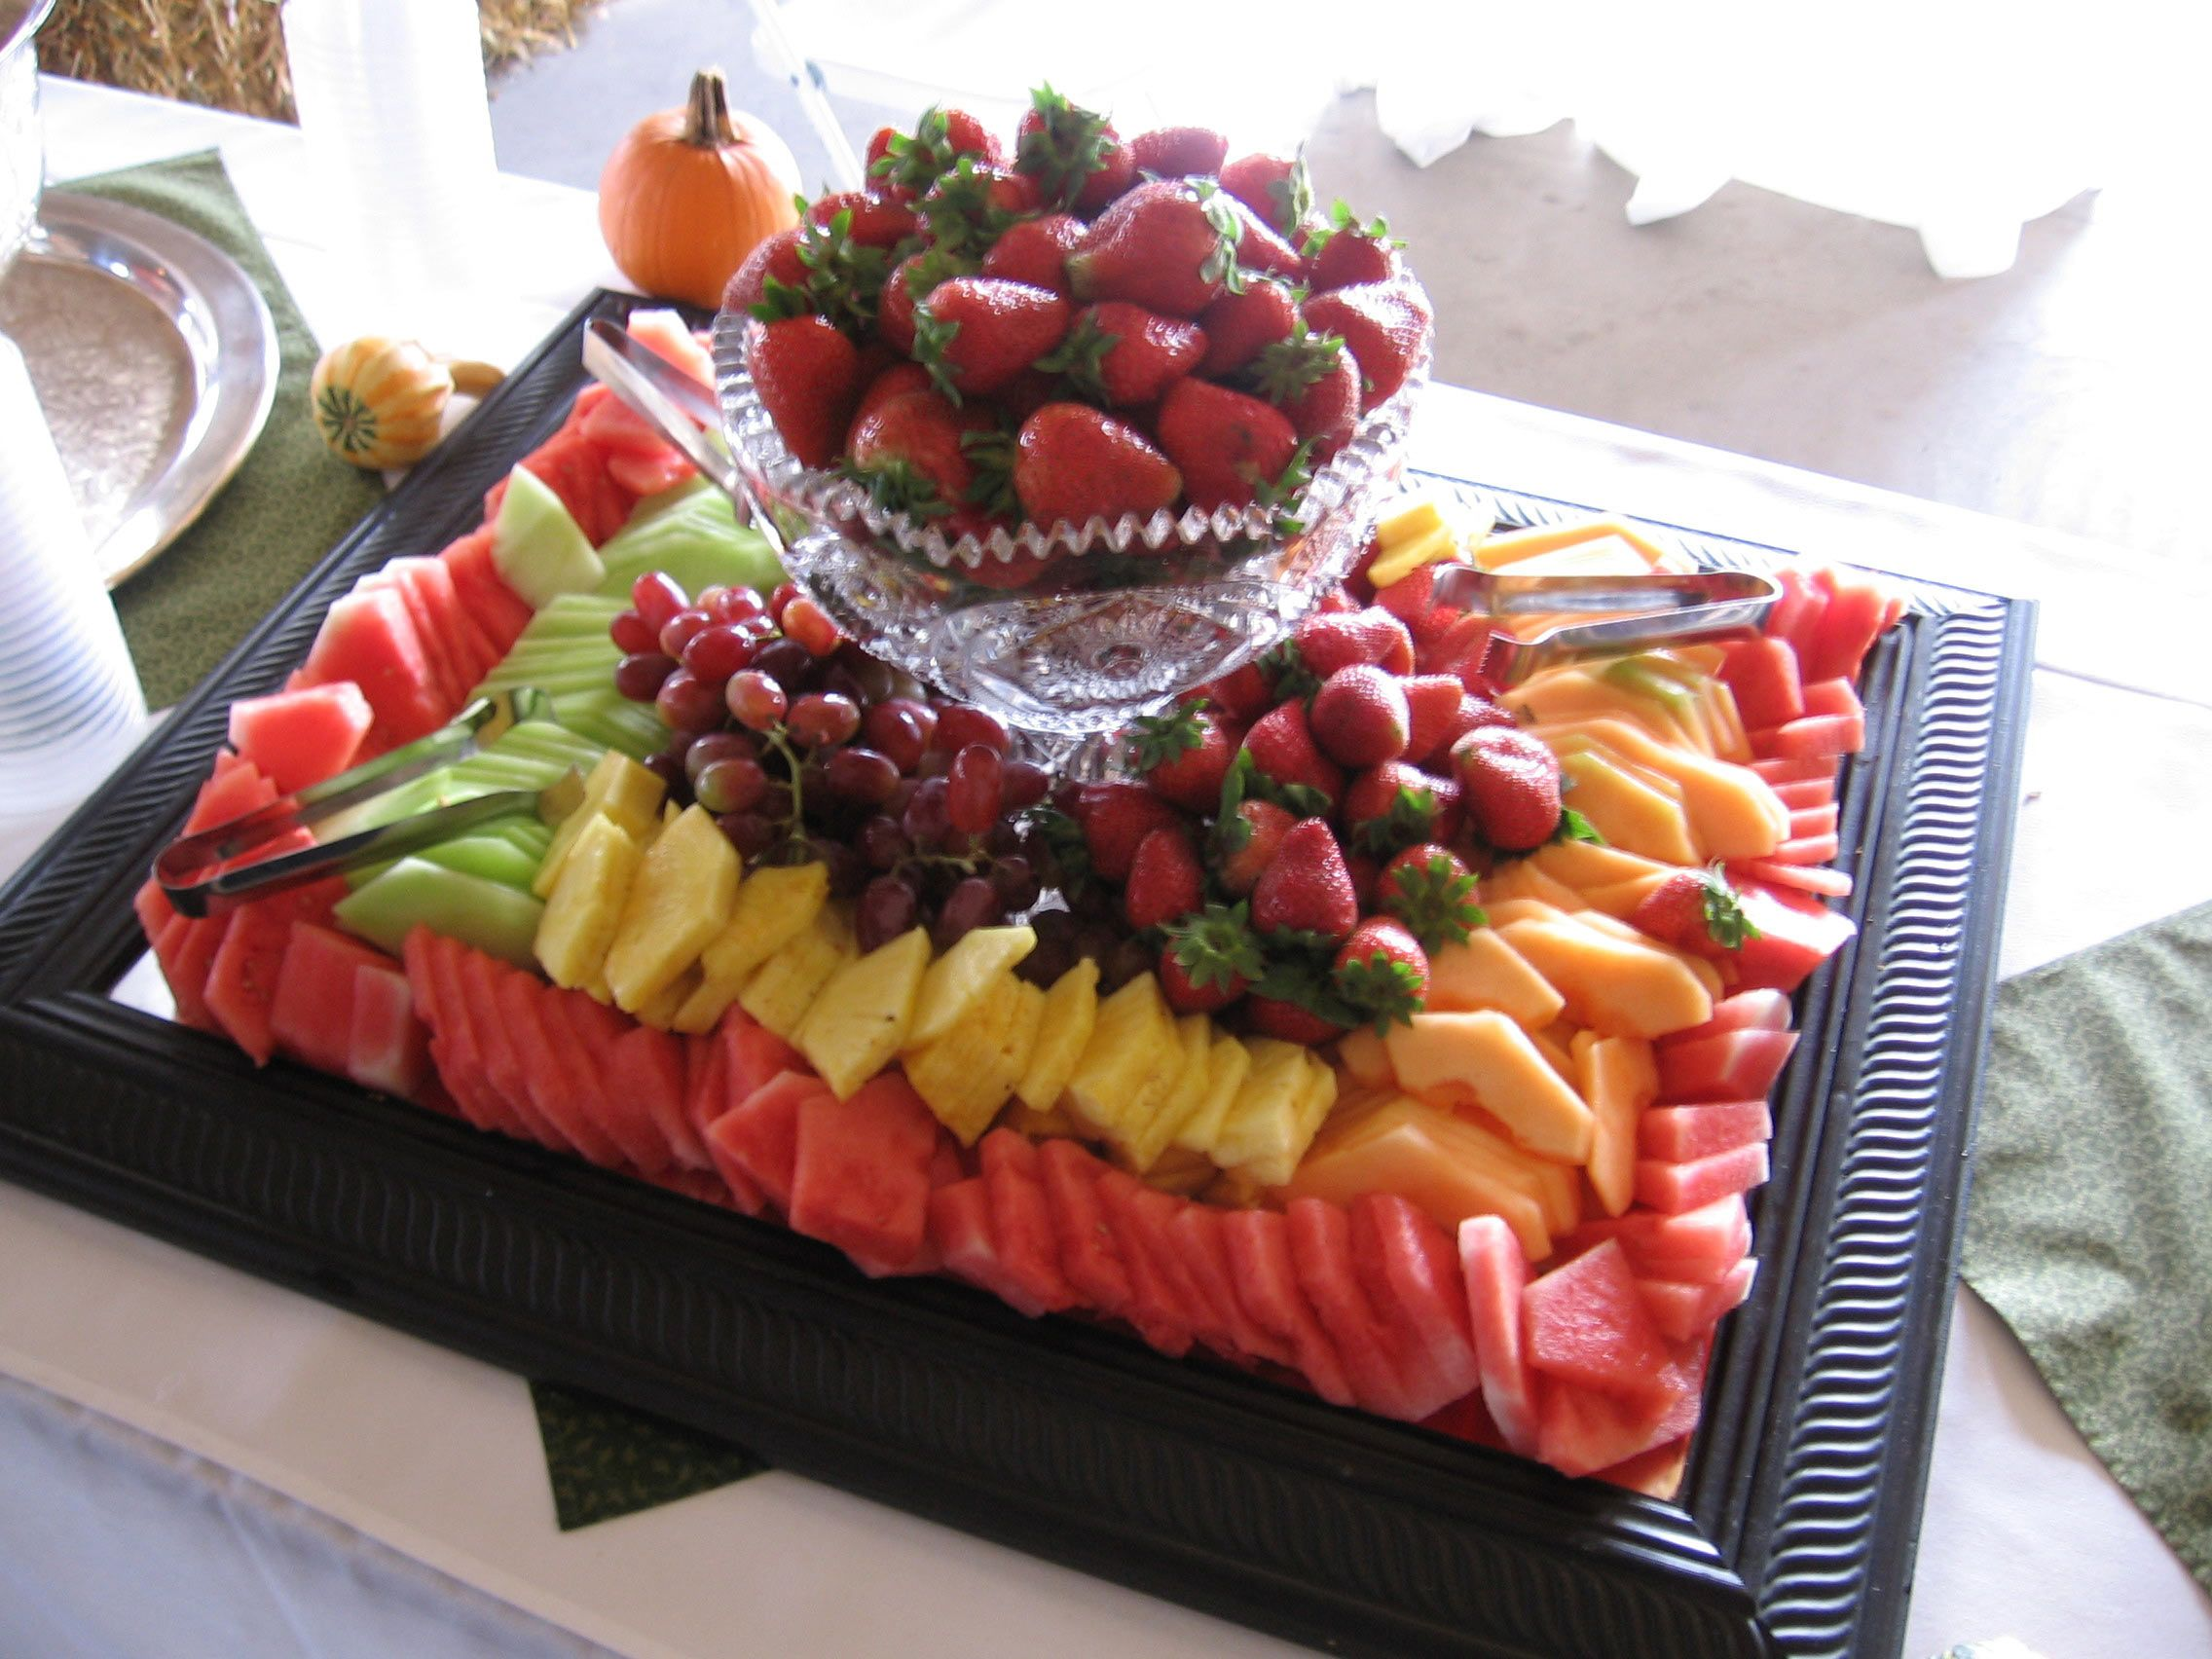 get 20 vegetable trays ideas on pinterest without signing up